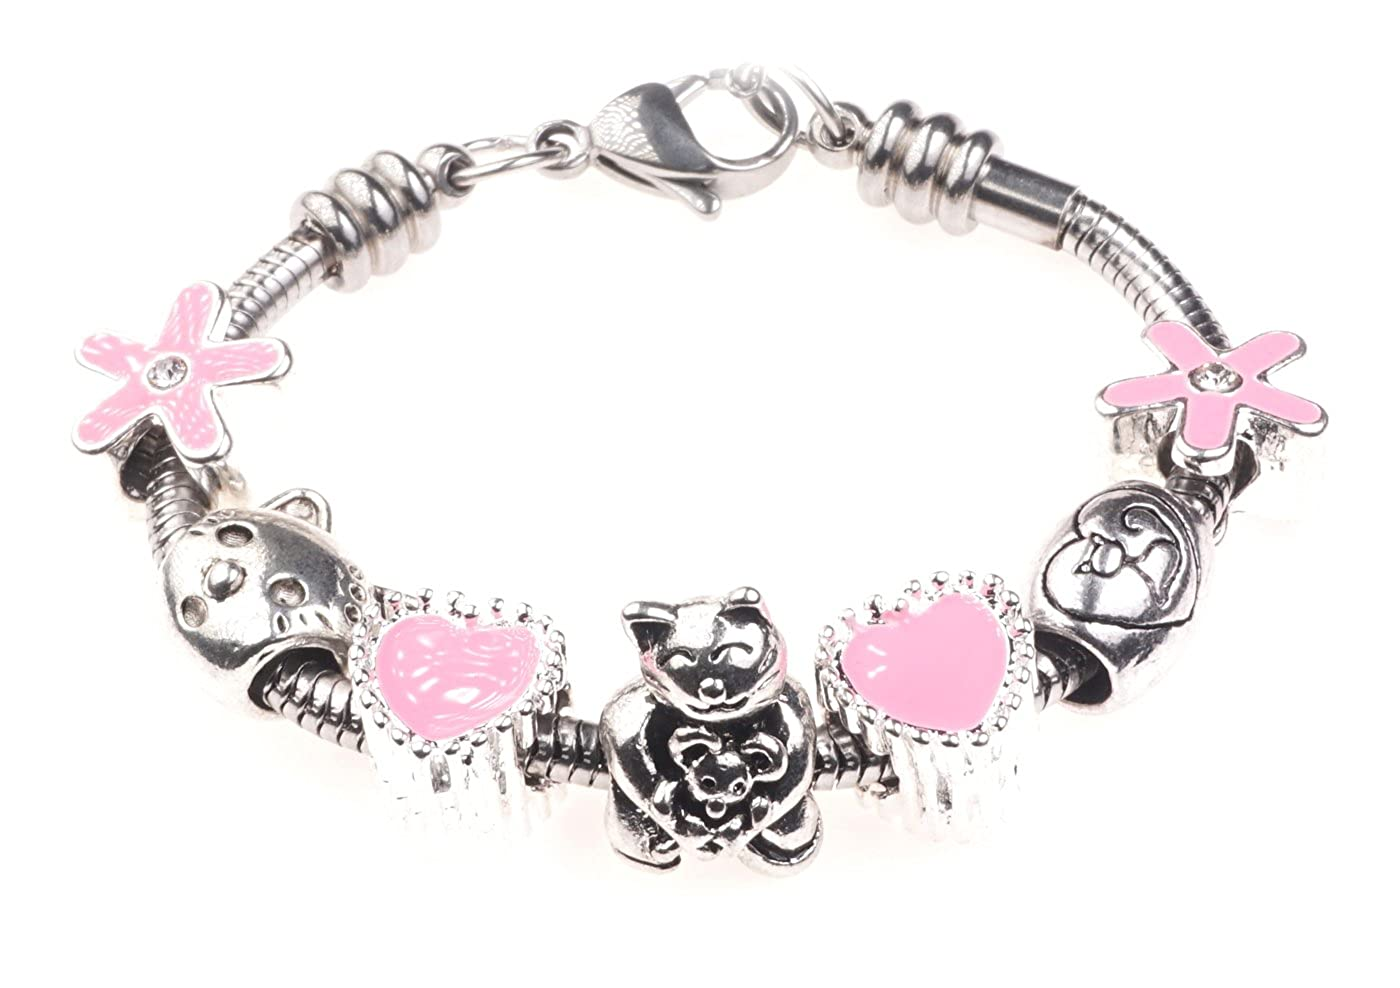 'I Love My Cat' Animal Pet Themed Childrens Charm Bracelet with Gift Box Girls Jewellery Jewellery Hut BRkidsCat